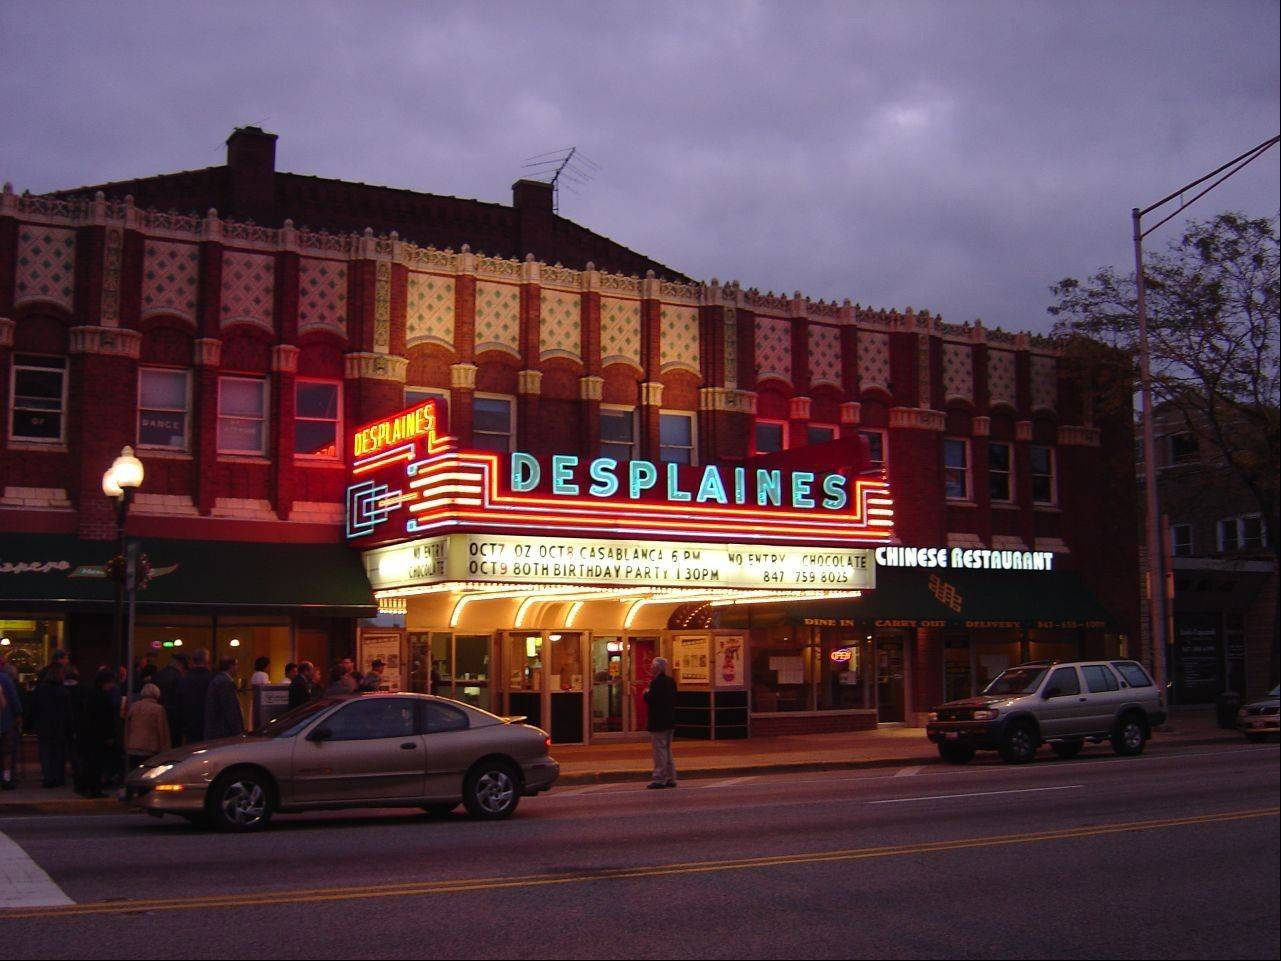 The Des Plaines Theatre will reopen this weekend after being closed for more than a year for extensive renovations.